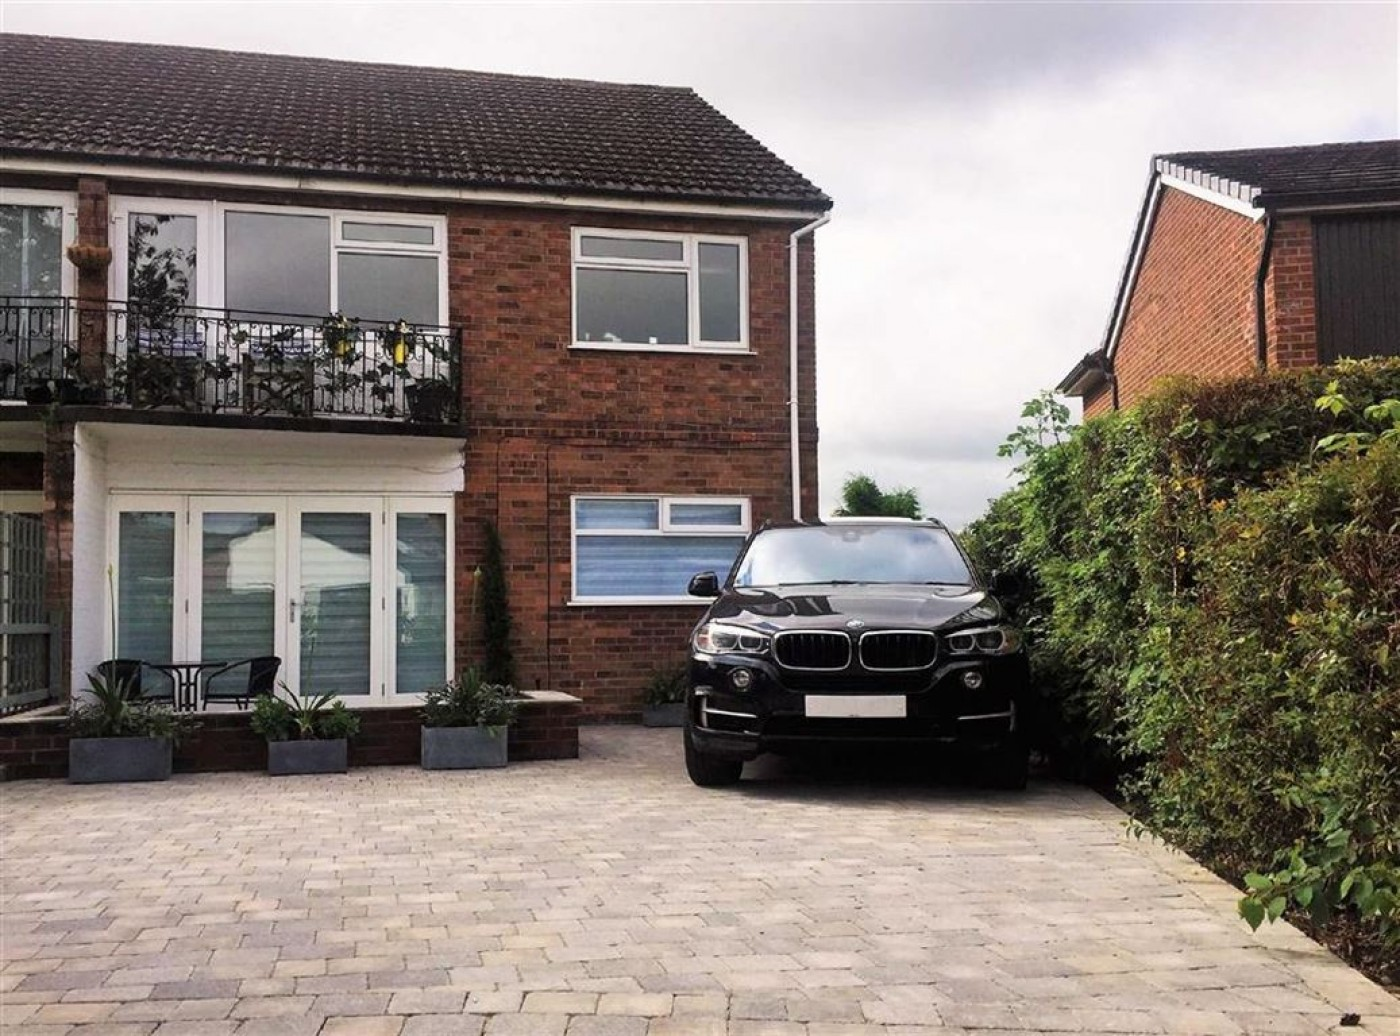 Images for Redesmere Drive, Alderley Edge, Cheshire EAID:themobileagentsapi BID:1